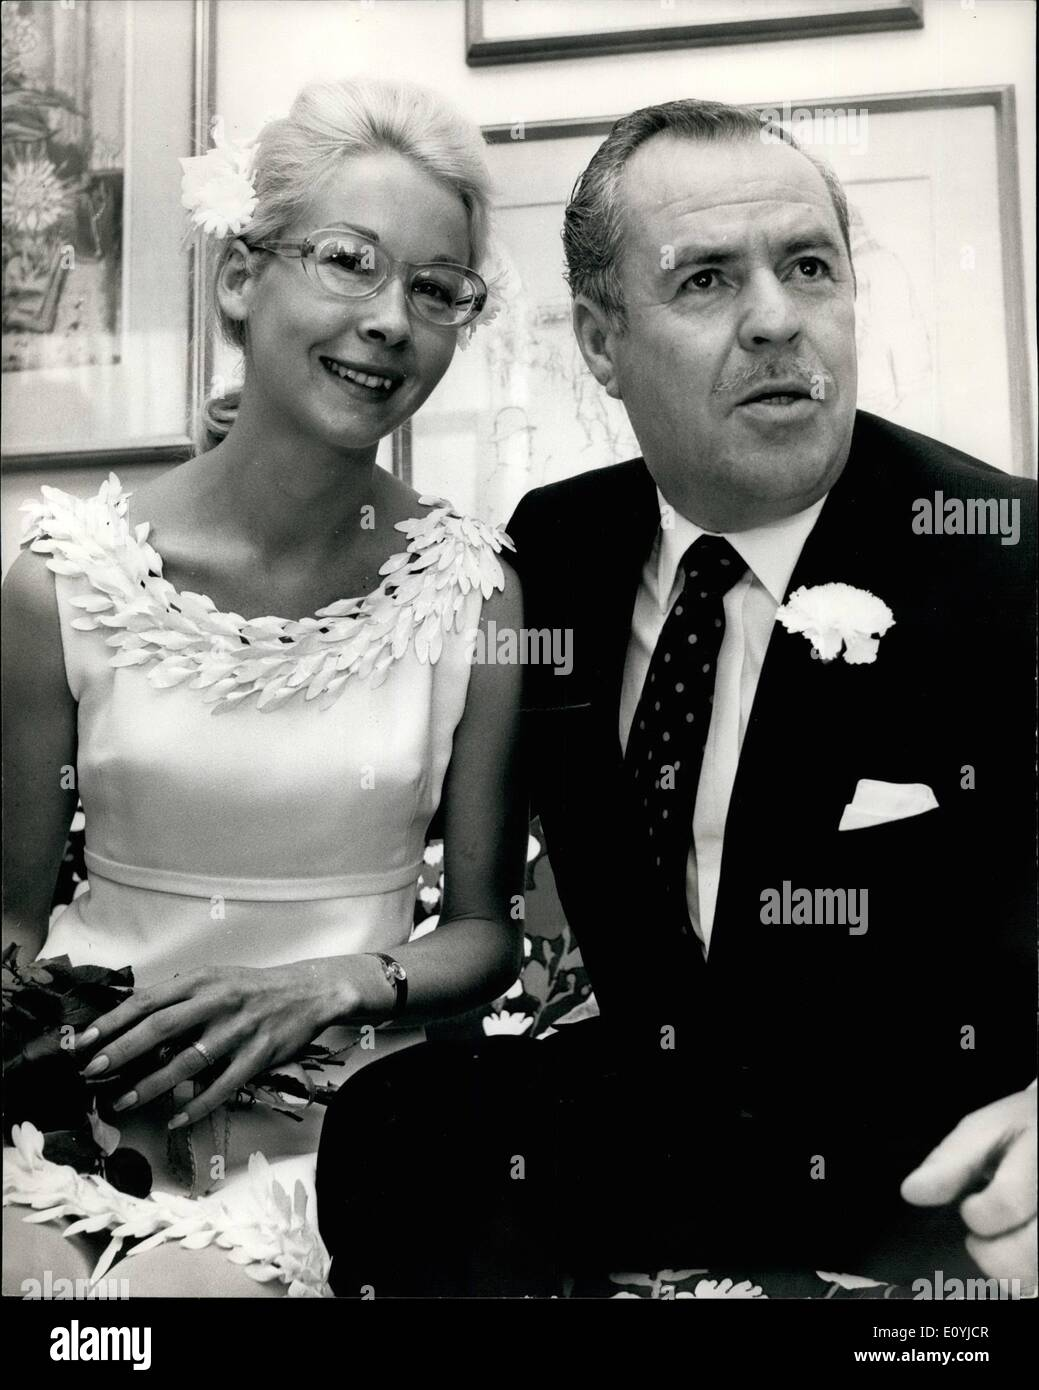 Jul. 07, 1970 - Ex-Spy Greville Wynne Marries: Greville Wynne, the British businessman jailed by the Russians on Spy charges in - Stock Image